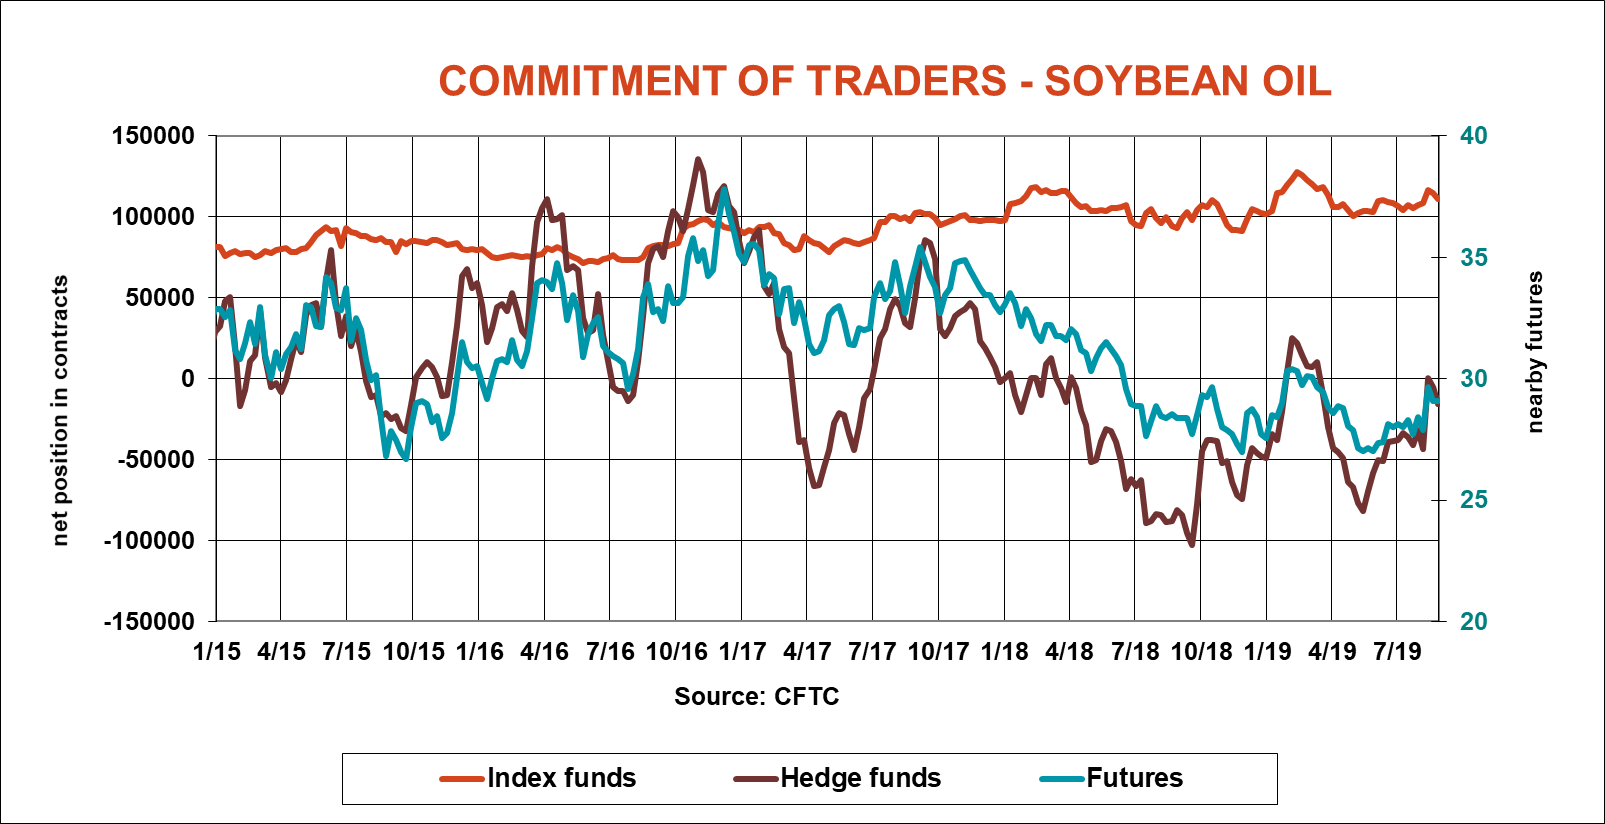 commitment-traders-soybean-oil-cftc-083019.png